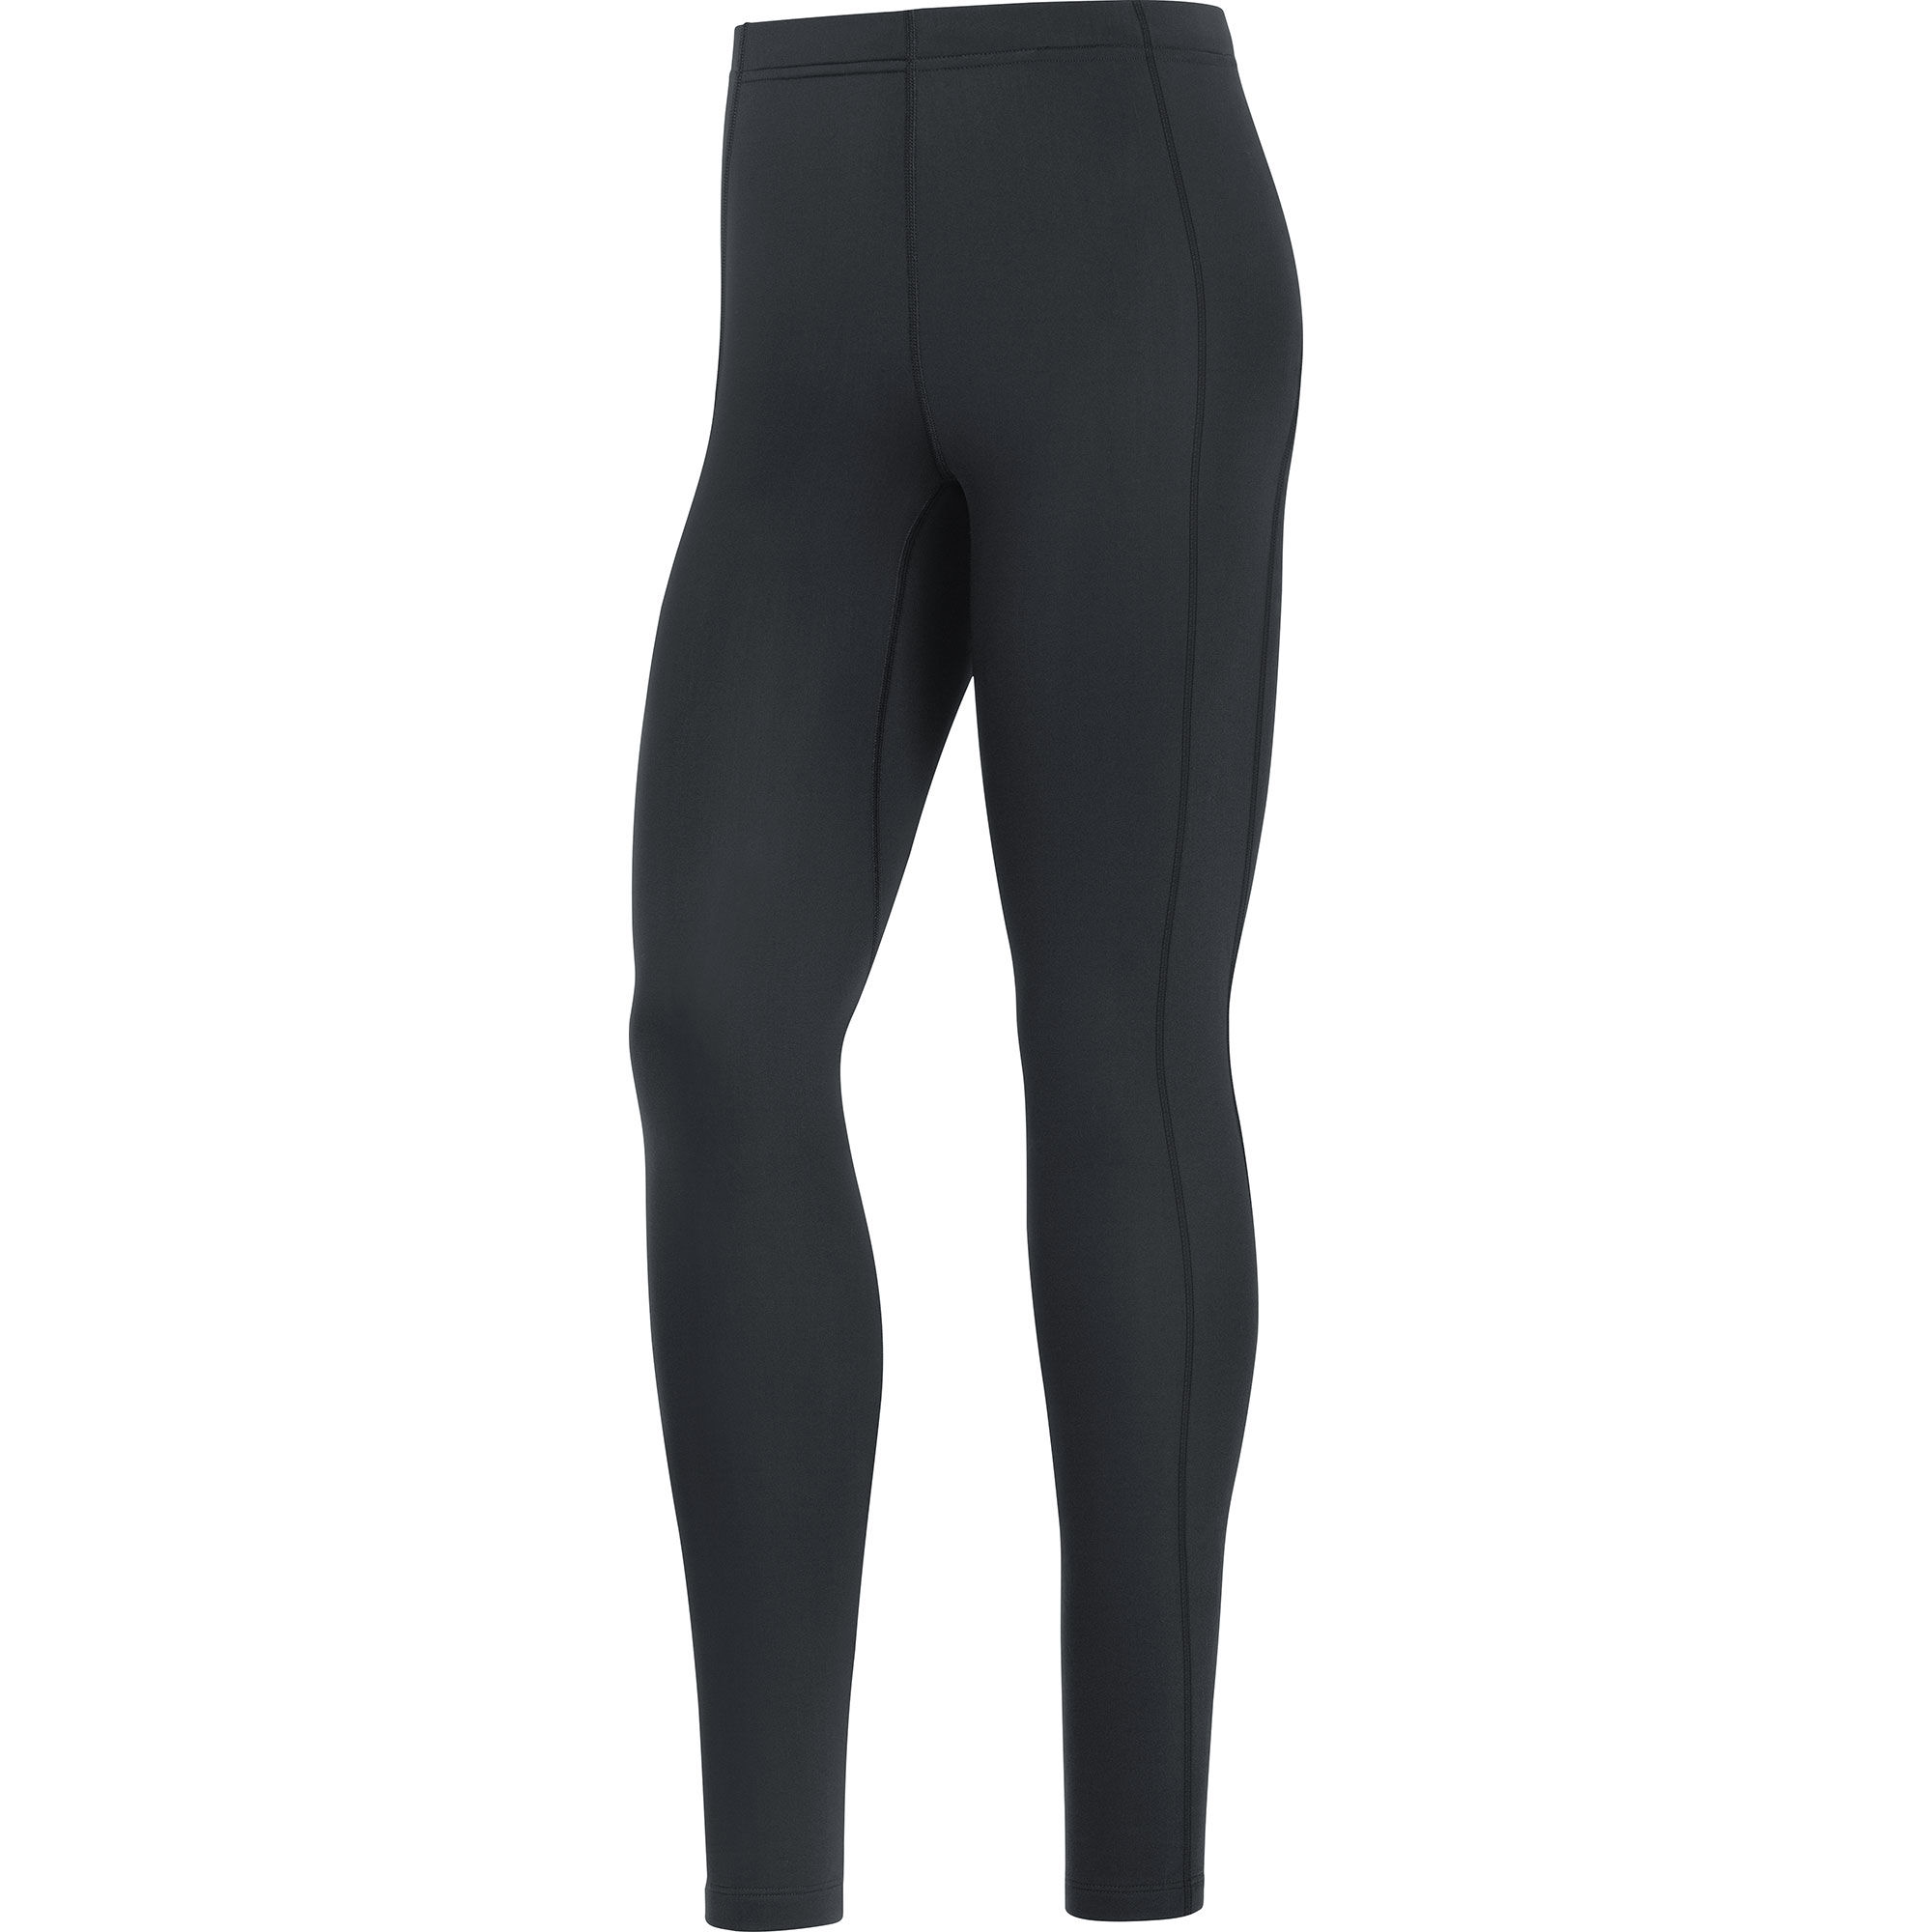 Gore Essential Lady Thermo Tights in Schwarz